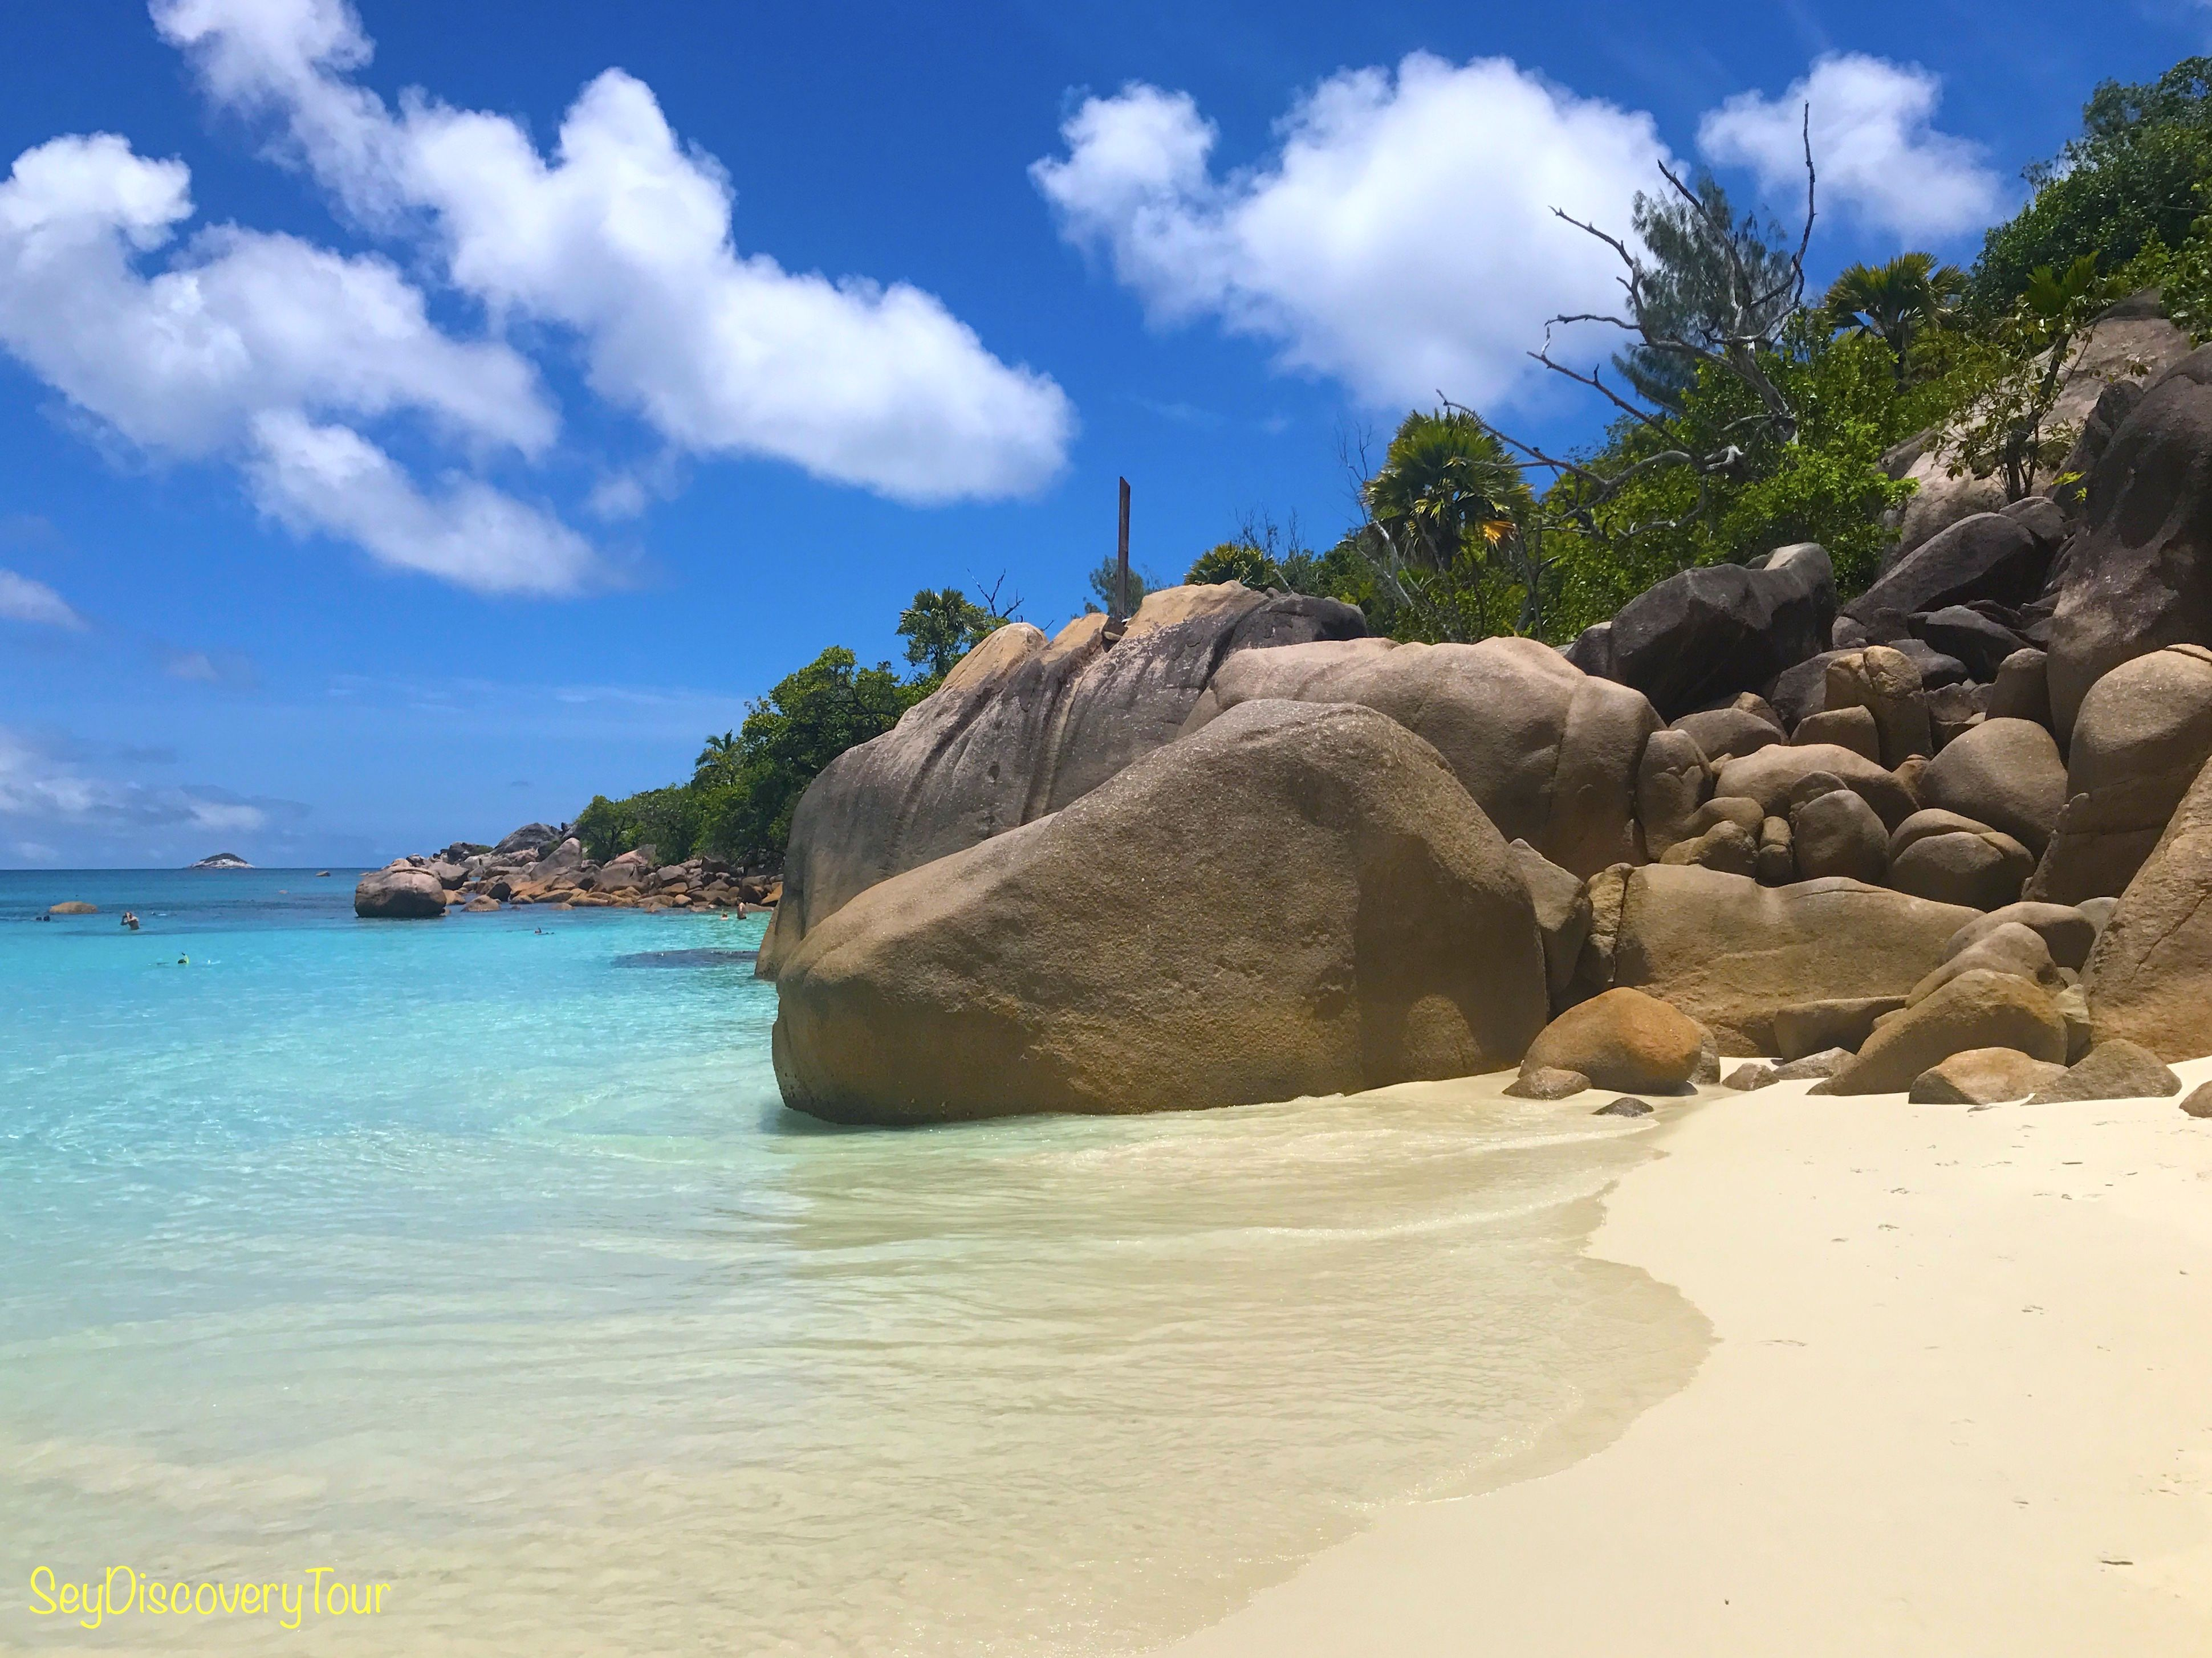 seydiscoverytour (With images) | Seychelles, Outdoor, Lazio